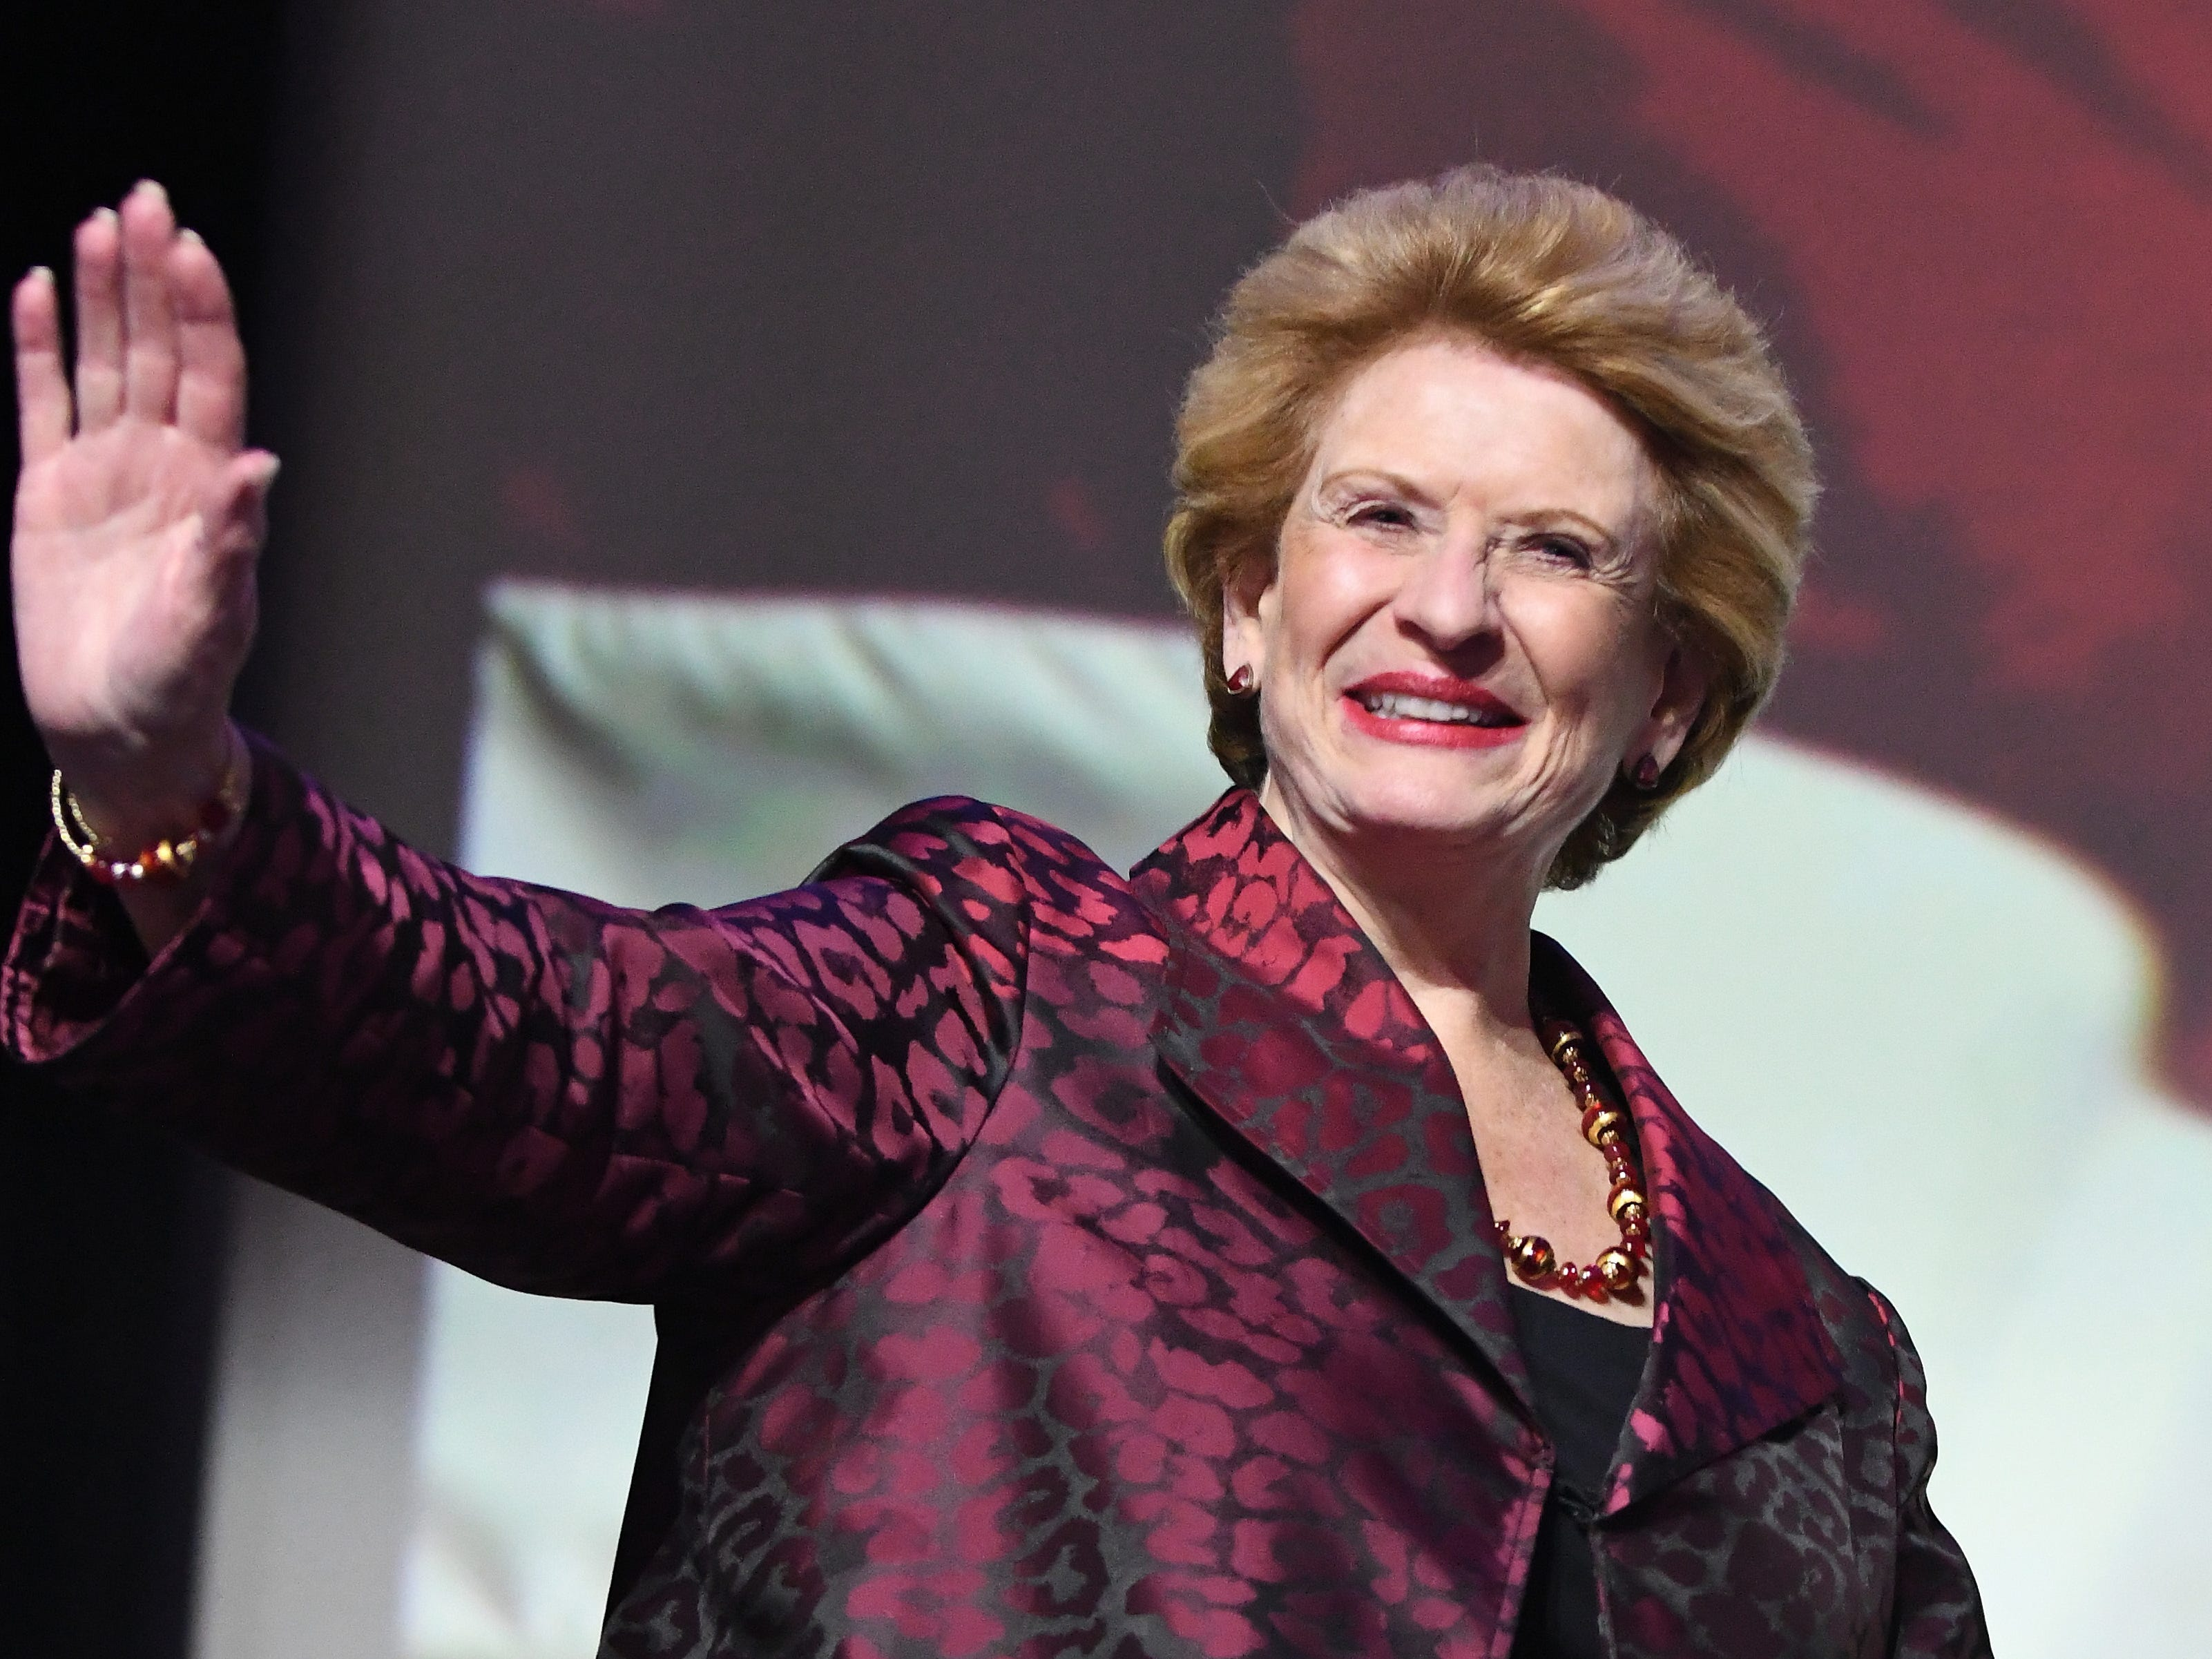 U.S. Senator Debbie Stabenow makes her way on stage after winning her race against John James. She joined  Democratic Party candidates at the Sound Board theater in the MotorCity Casino in Detroit Tuesday night.